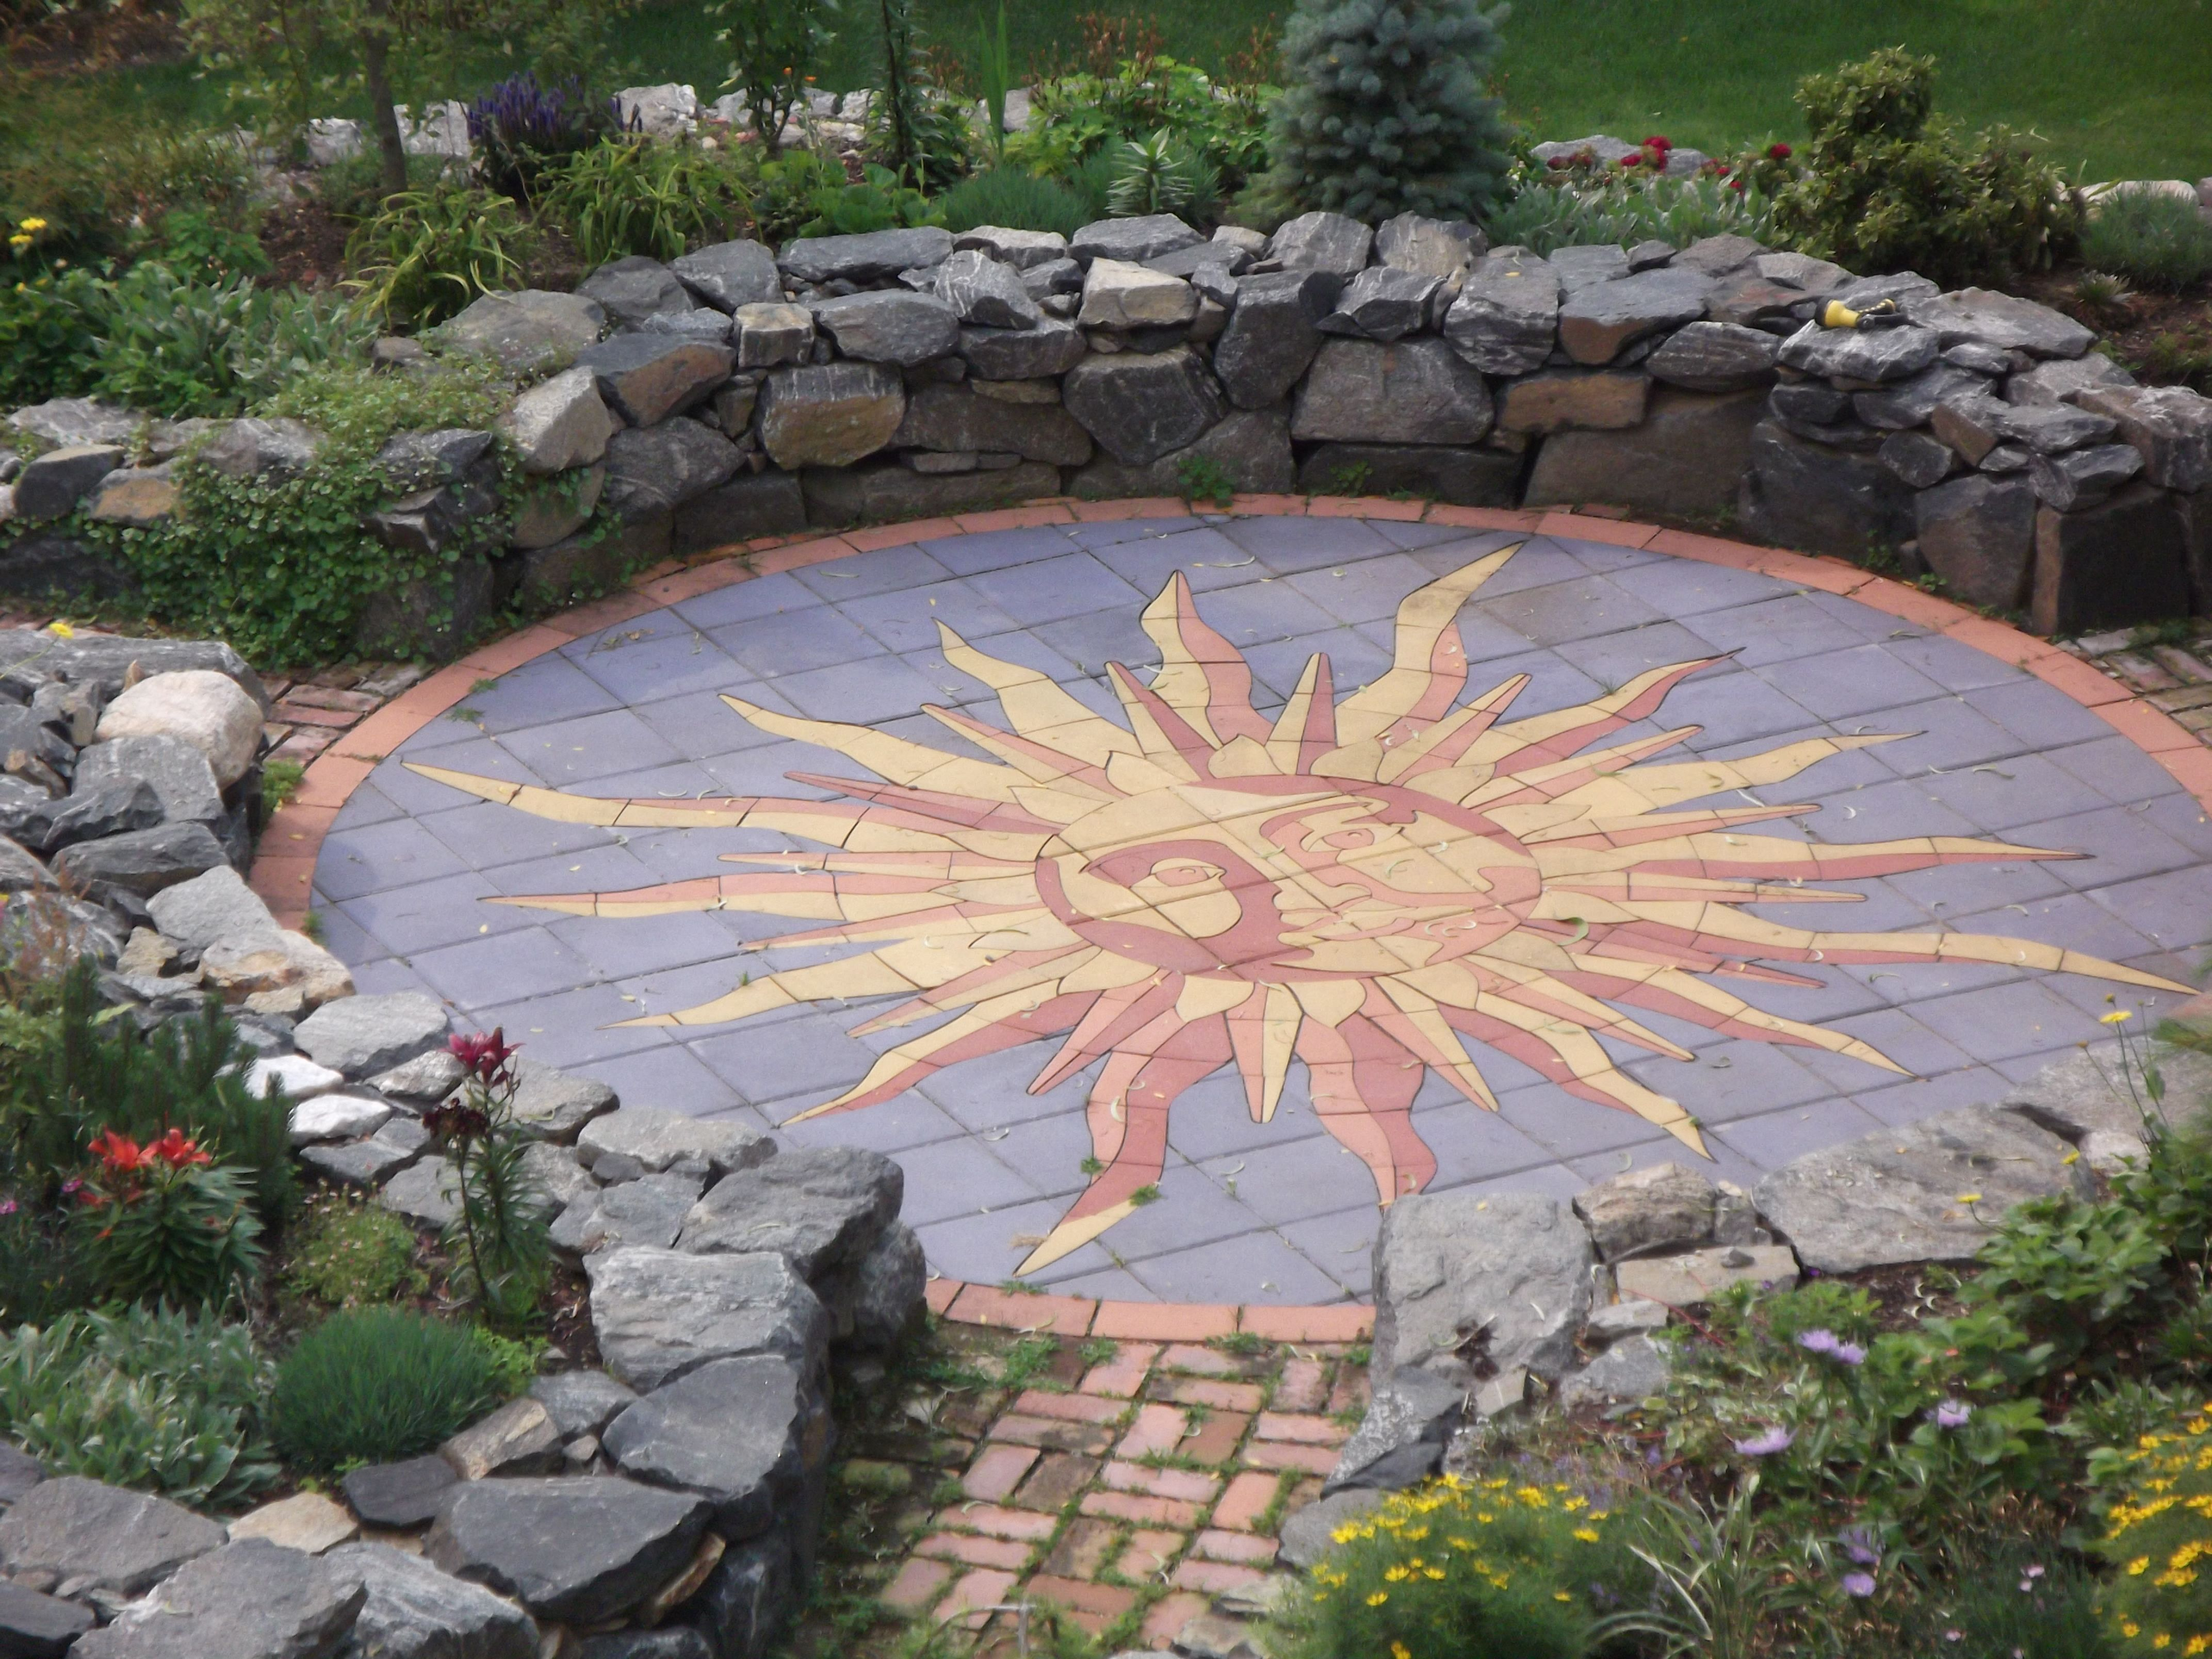 sunburst design perfect in a large open space or shrunk for urban garden applications